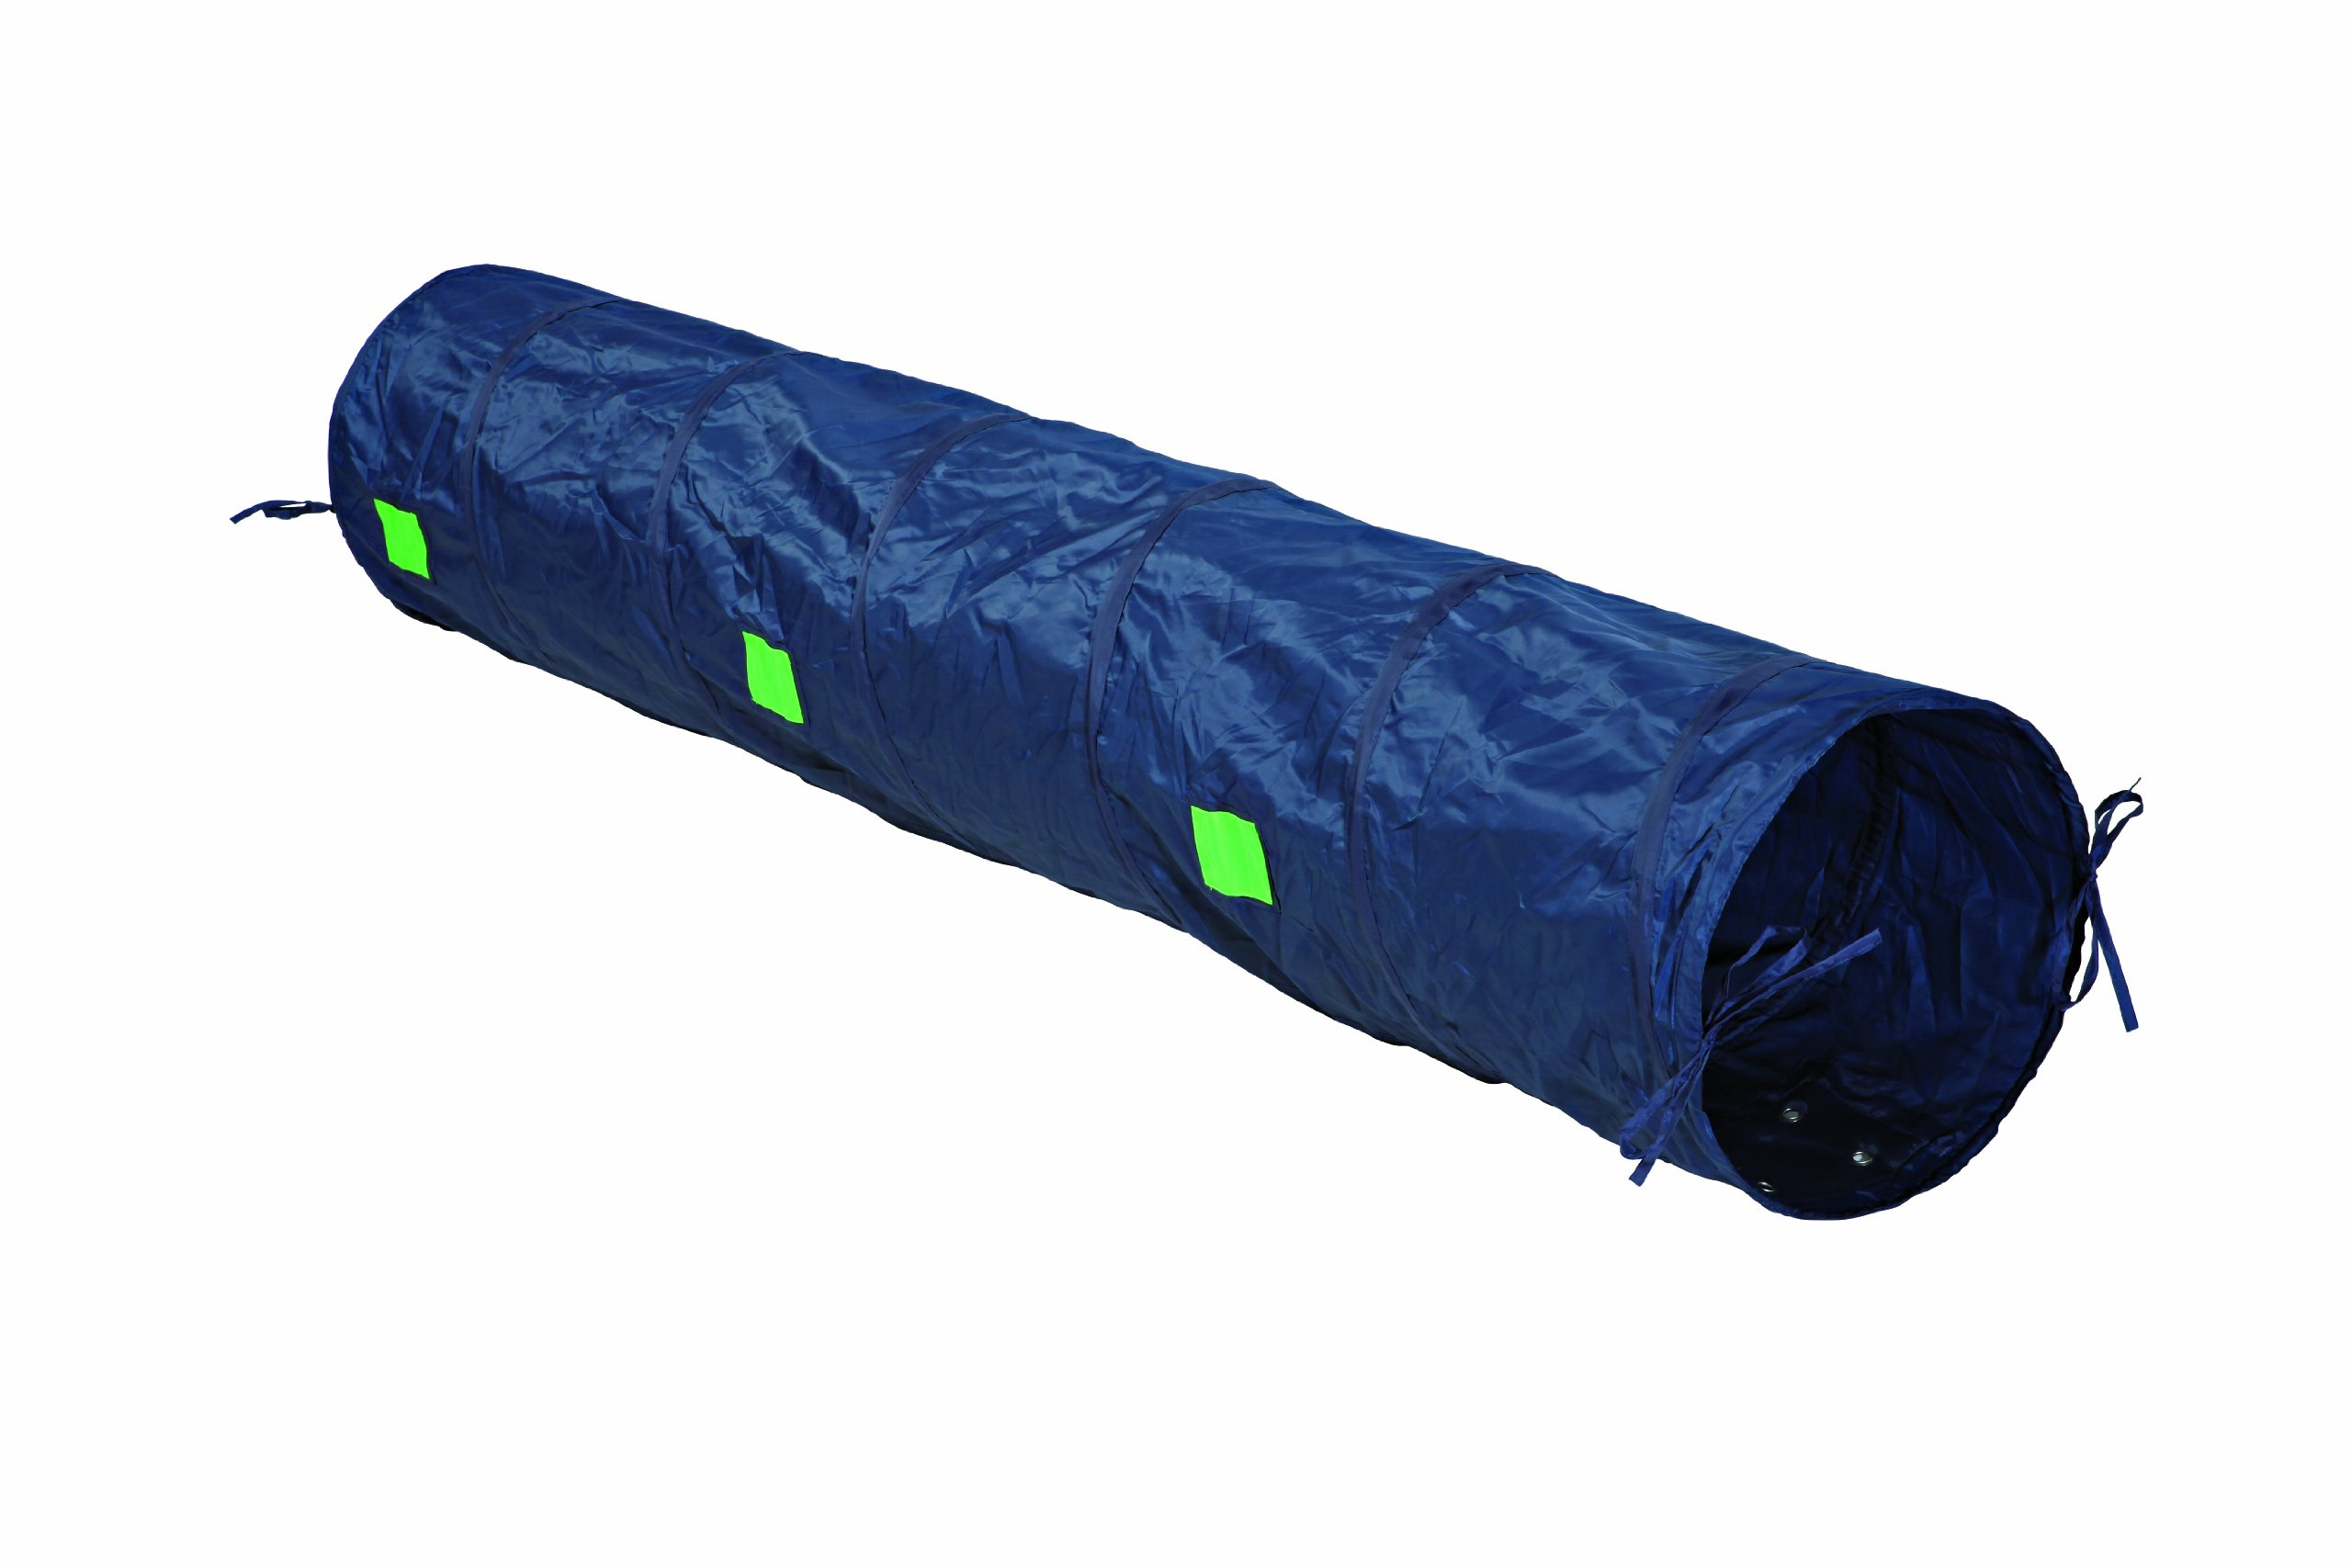 Trixie Pet Products Agility Basic Tunnel, Medium by Trixie